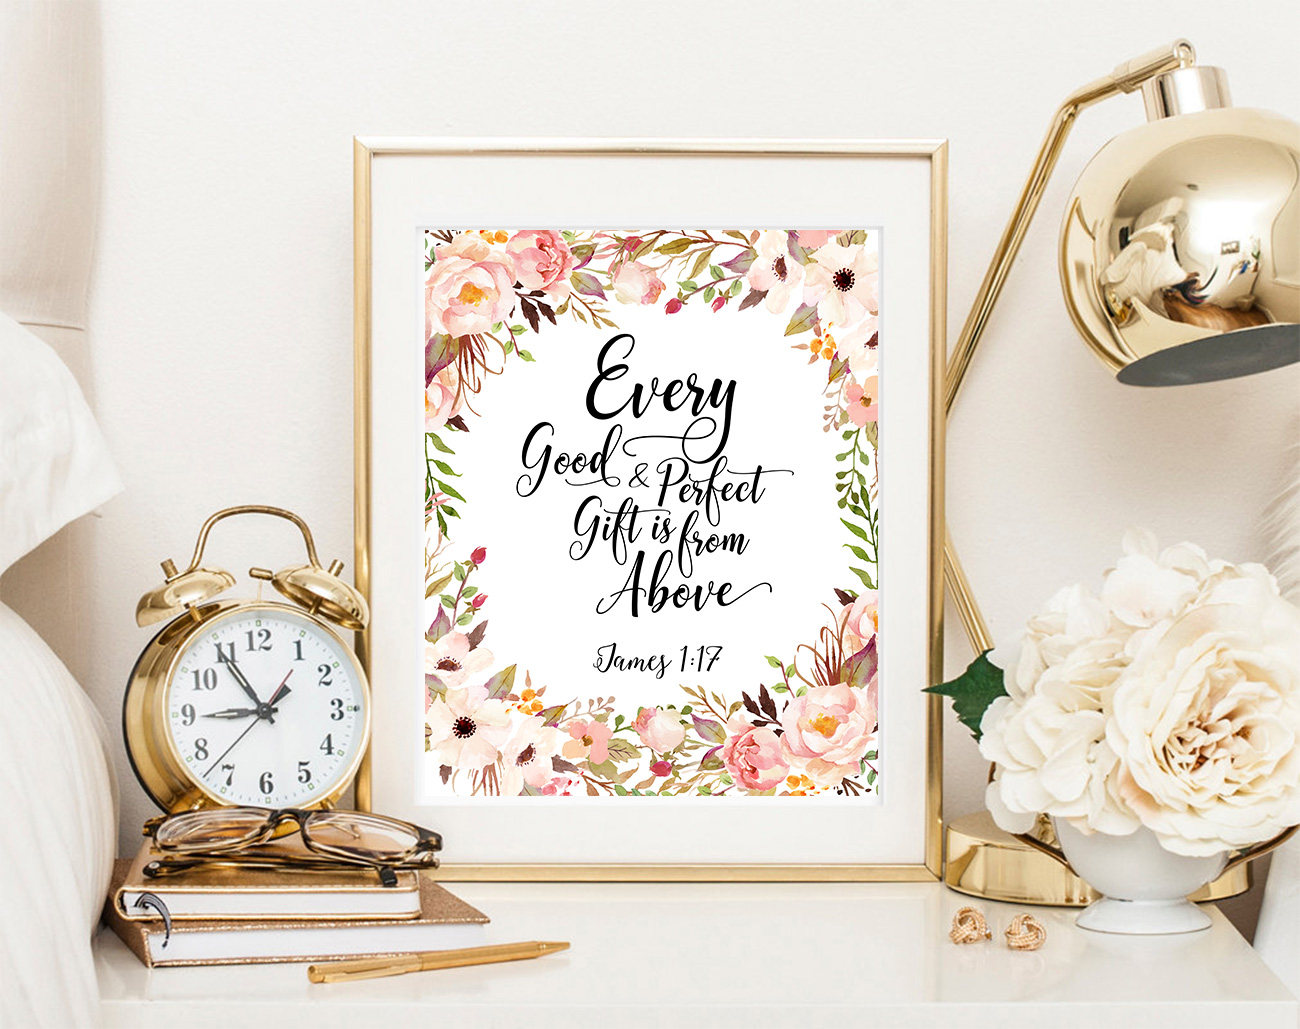 James 1:17 bile verse print Every good and perfect gift is from above baby shower gift faux gold foil printable scripture print